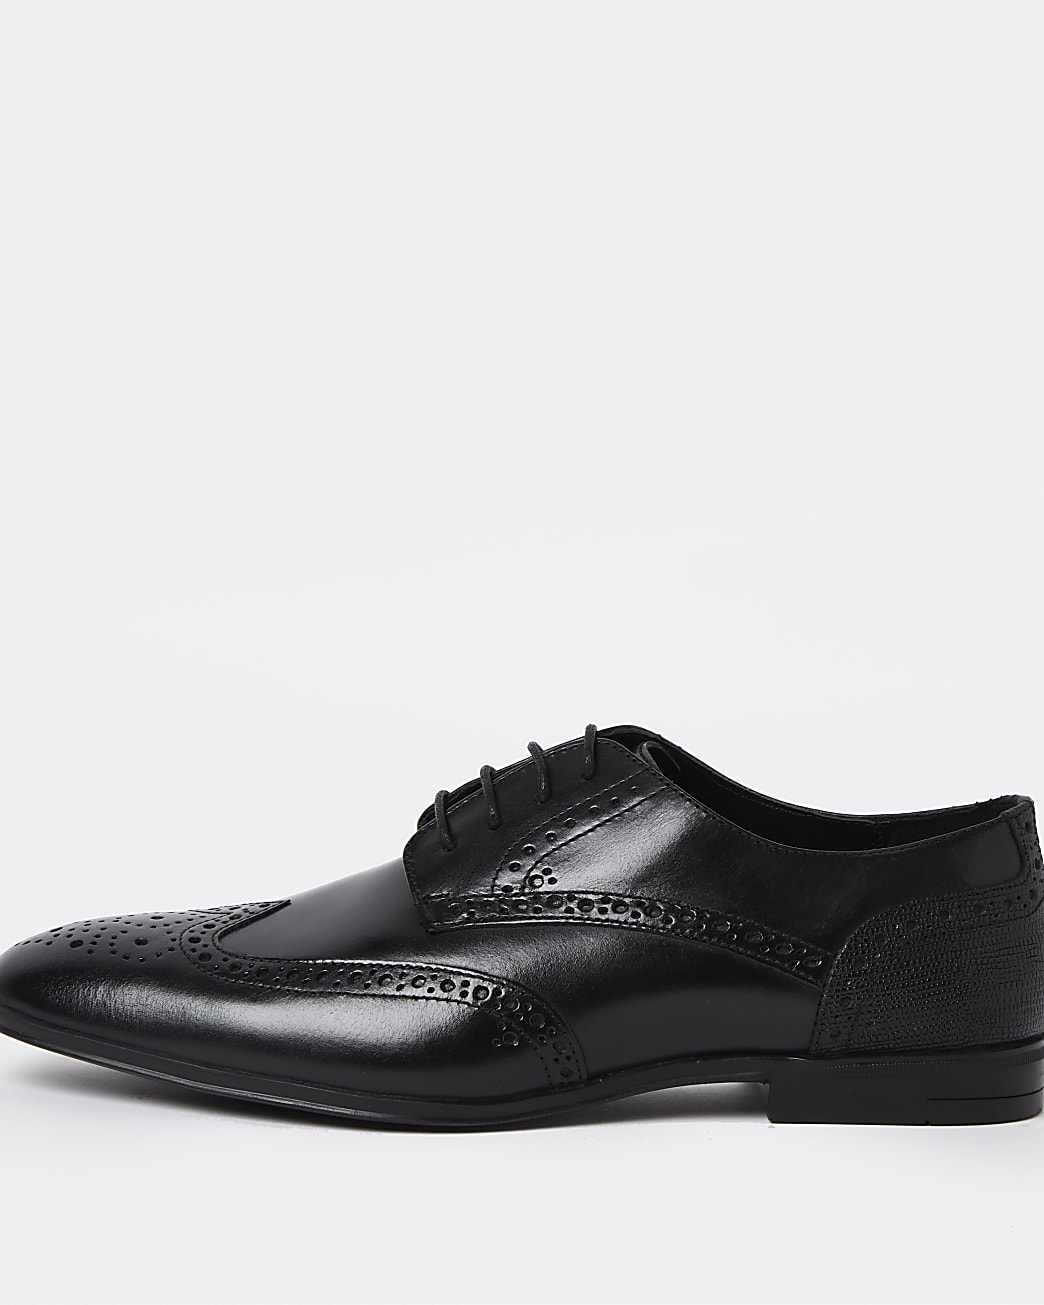 Big & tall black lace up brogue derby shoes